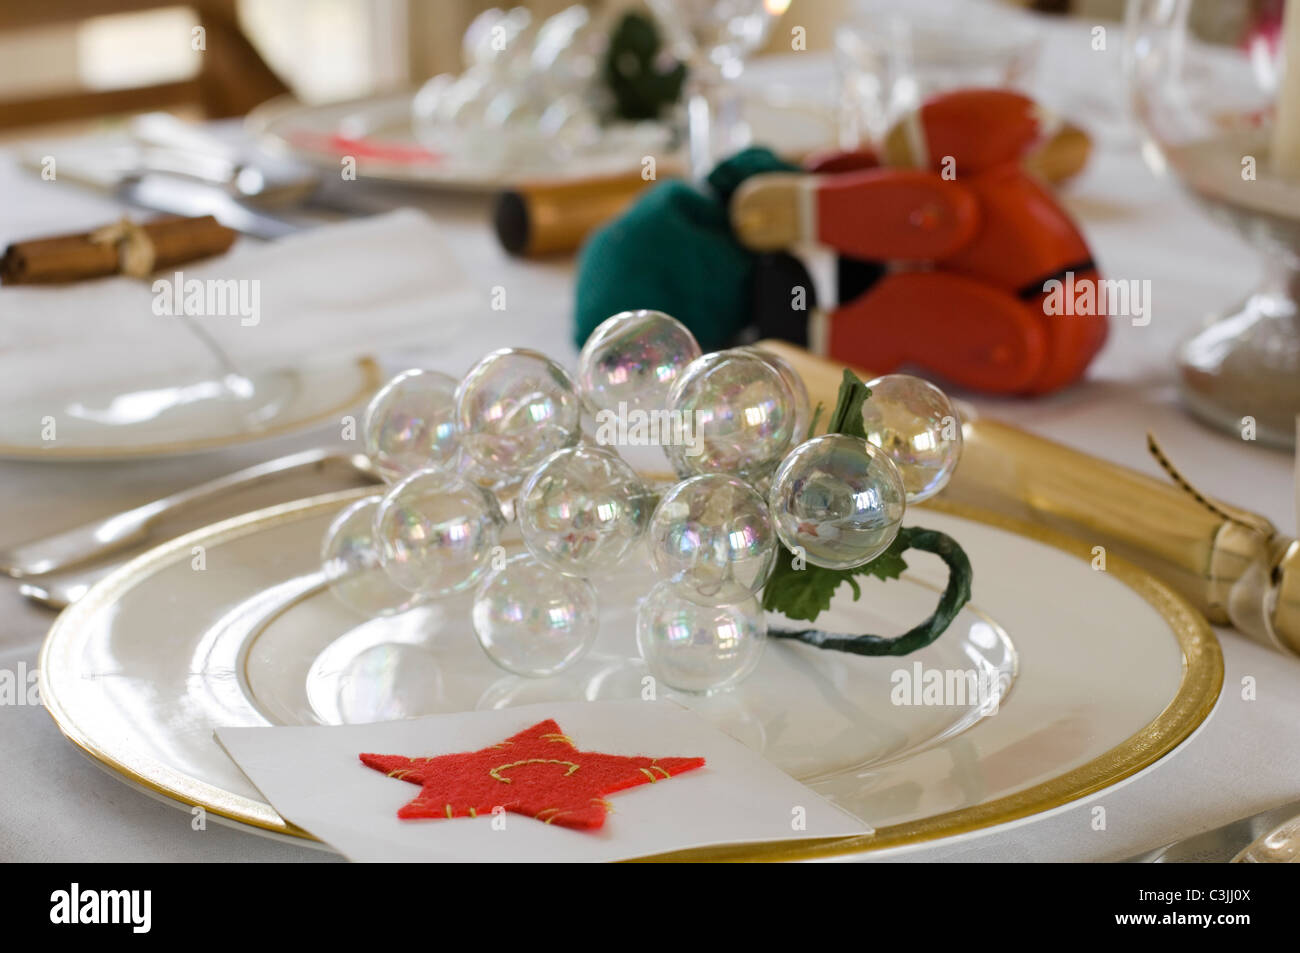 Festive table place setting with cracker and glass baubles - Stock Image